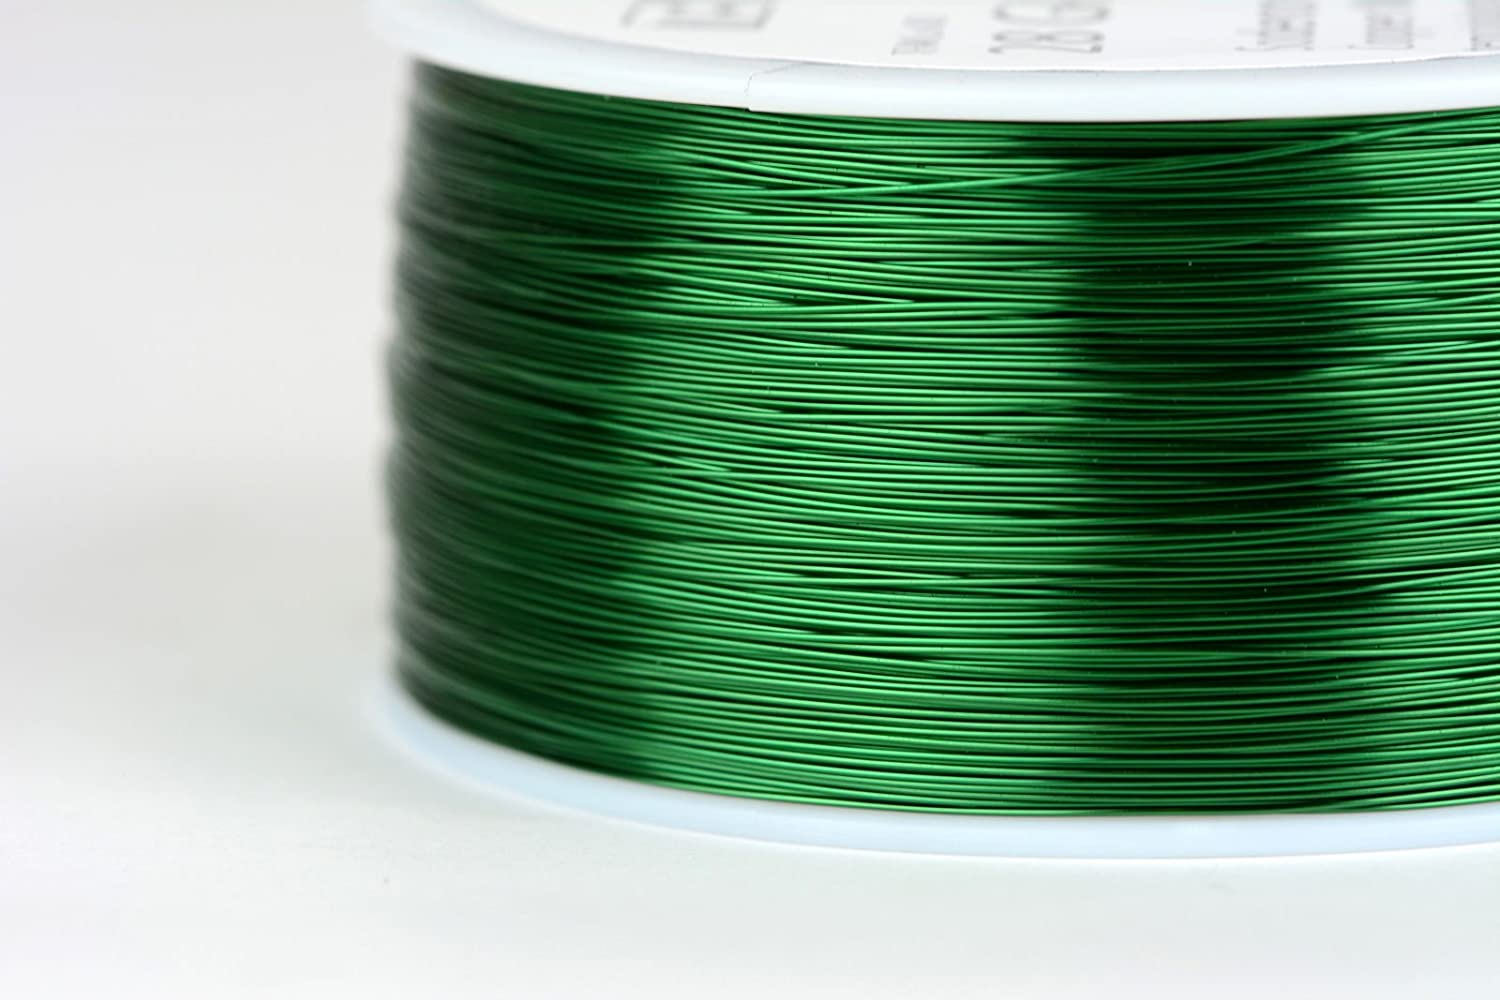 1 lb 1988 ft 155/°C Magnetic Coil Green TEMCo 28 AWG Copper Magnet Wire